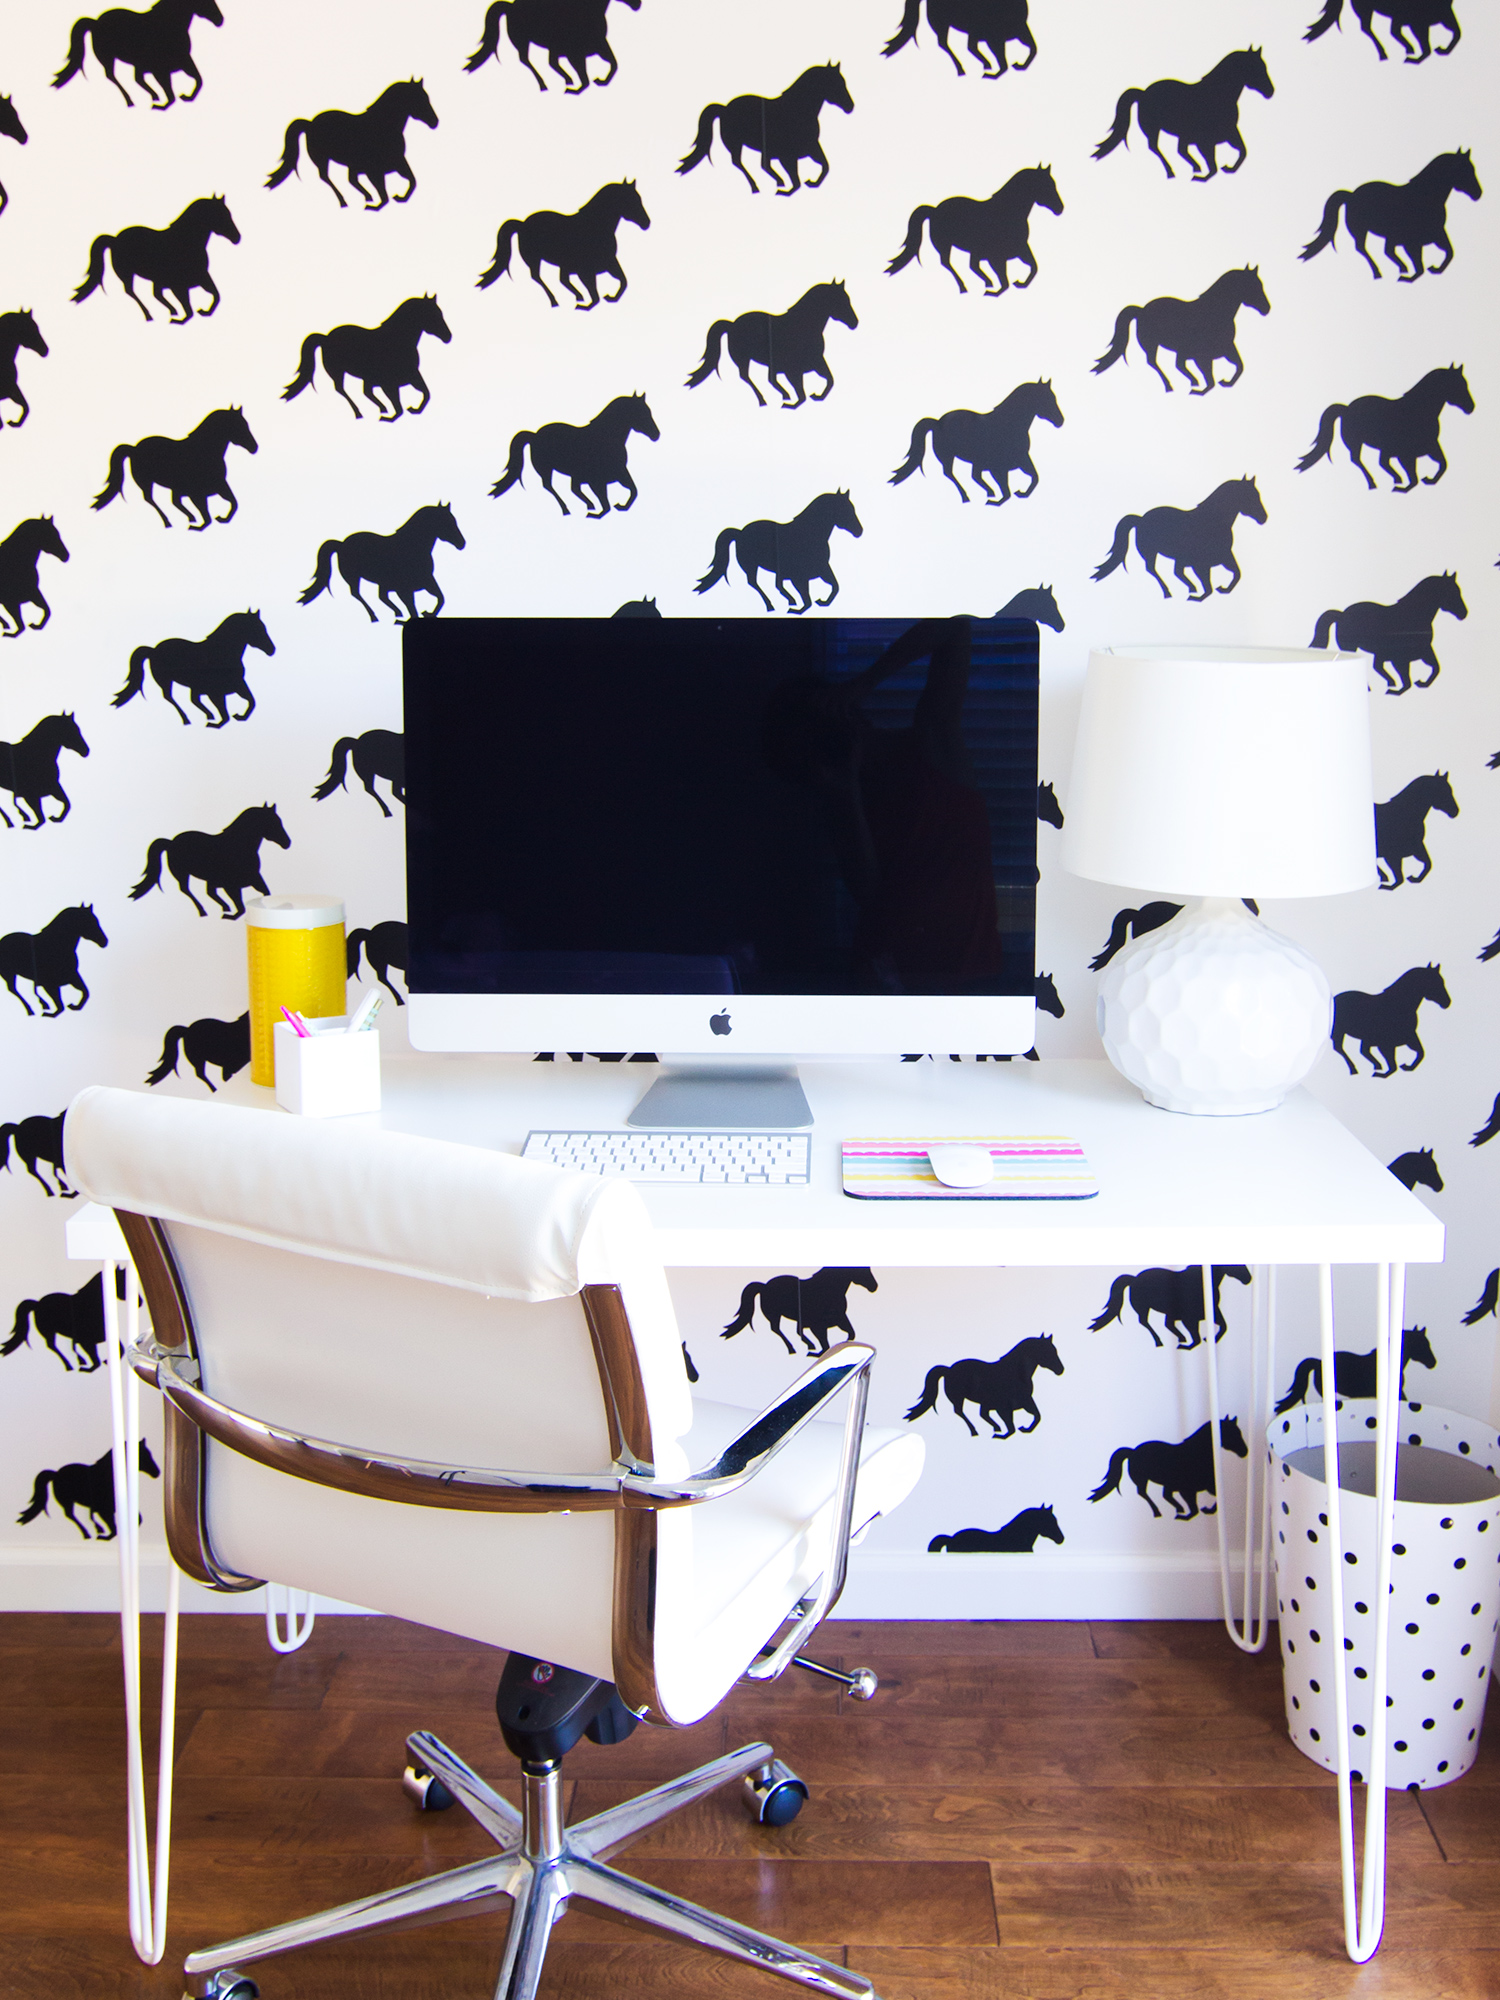 Loving this black and white horse wallpaper!